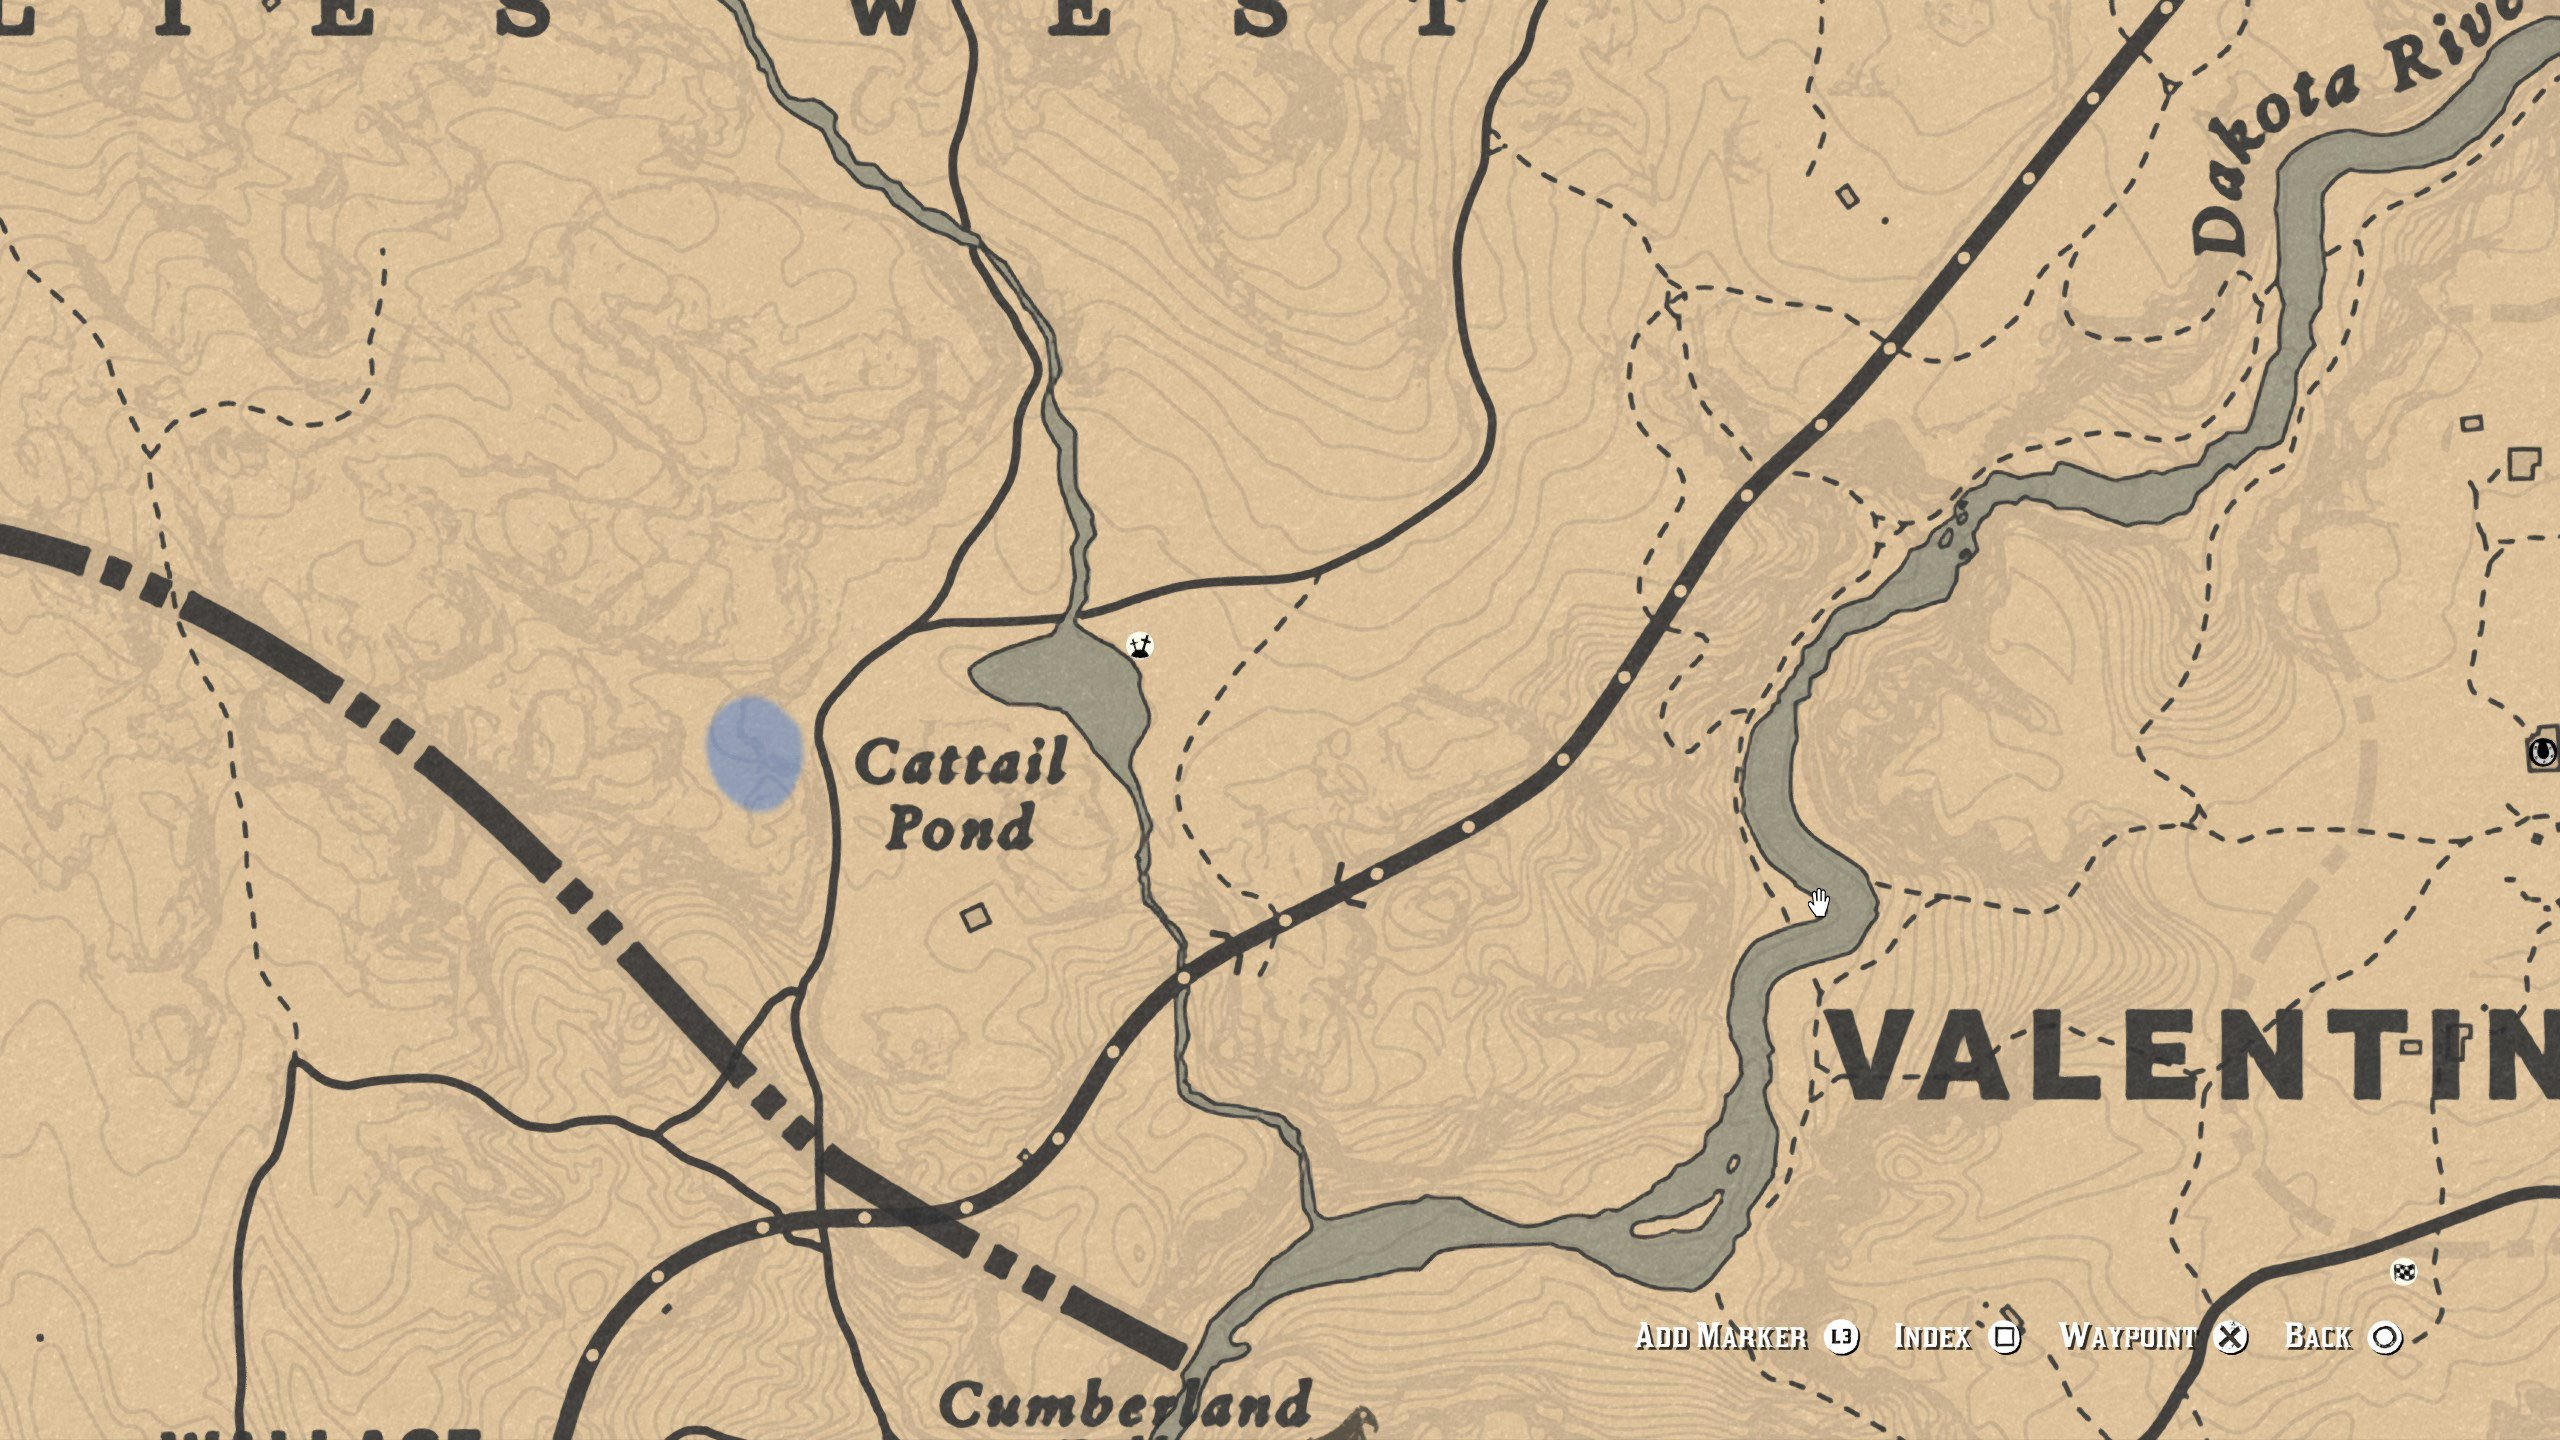 Eagle location - Cattail Pond spawn 2 - RDR2